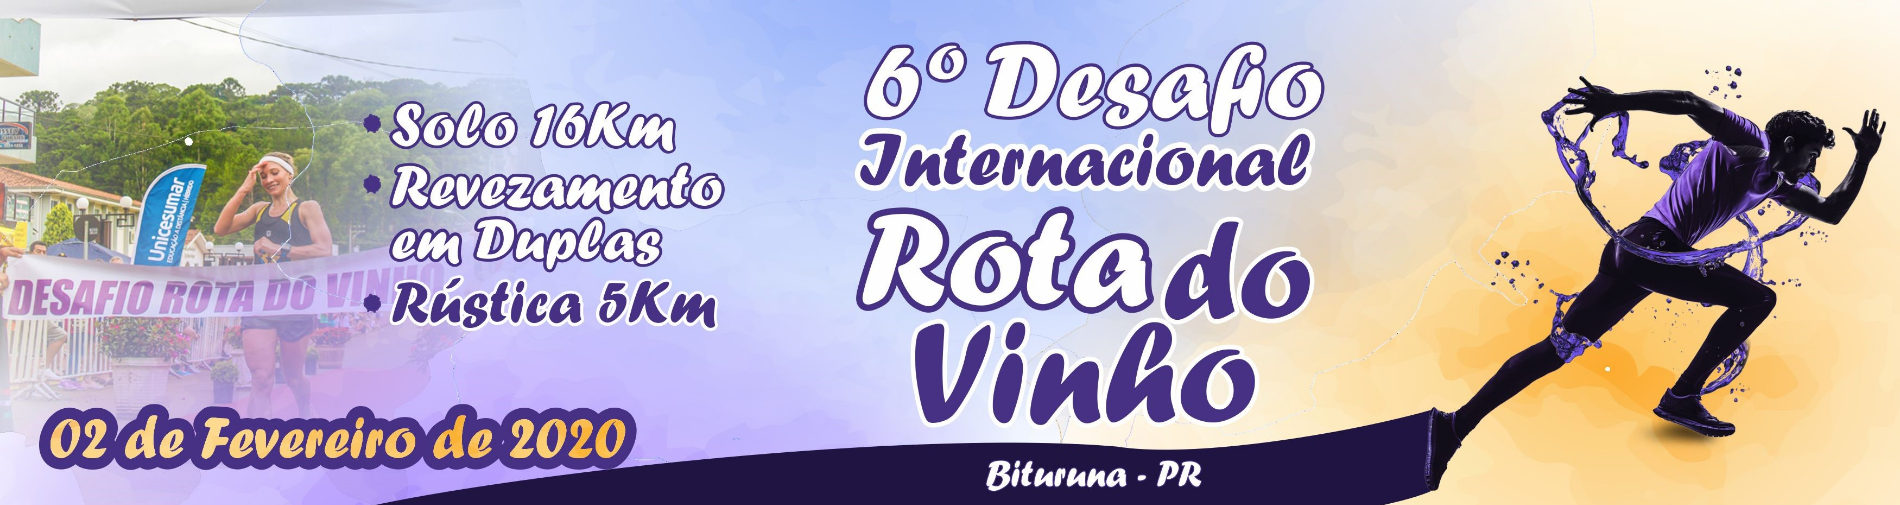 6º DESAFIO INTERNACIONAL ROTA DO VINHO